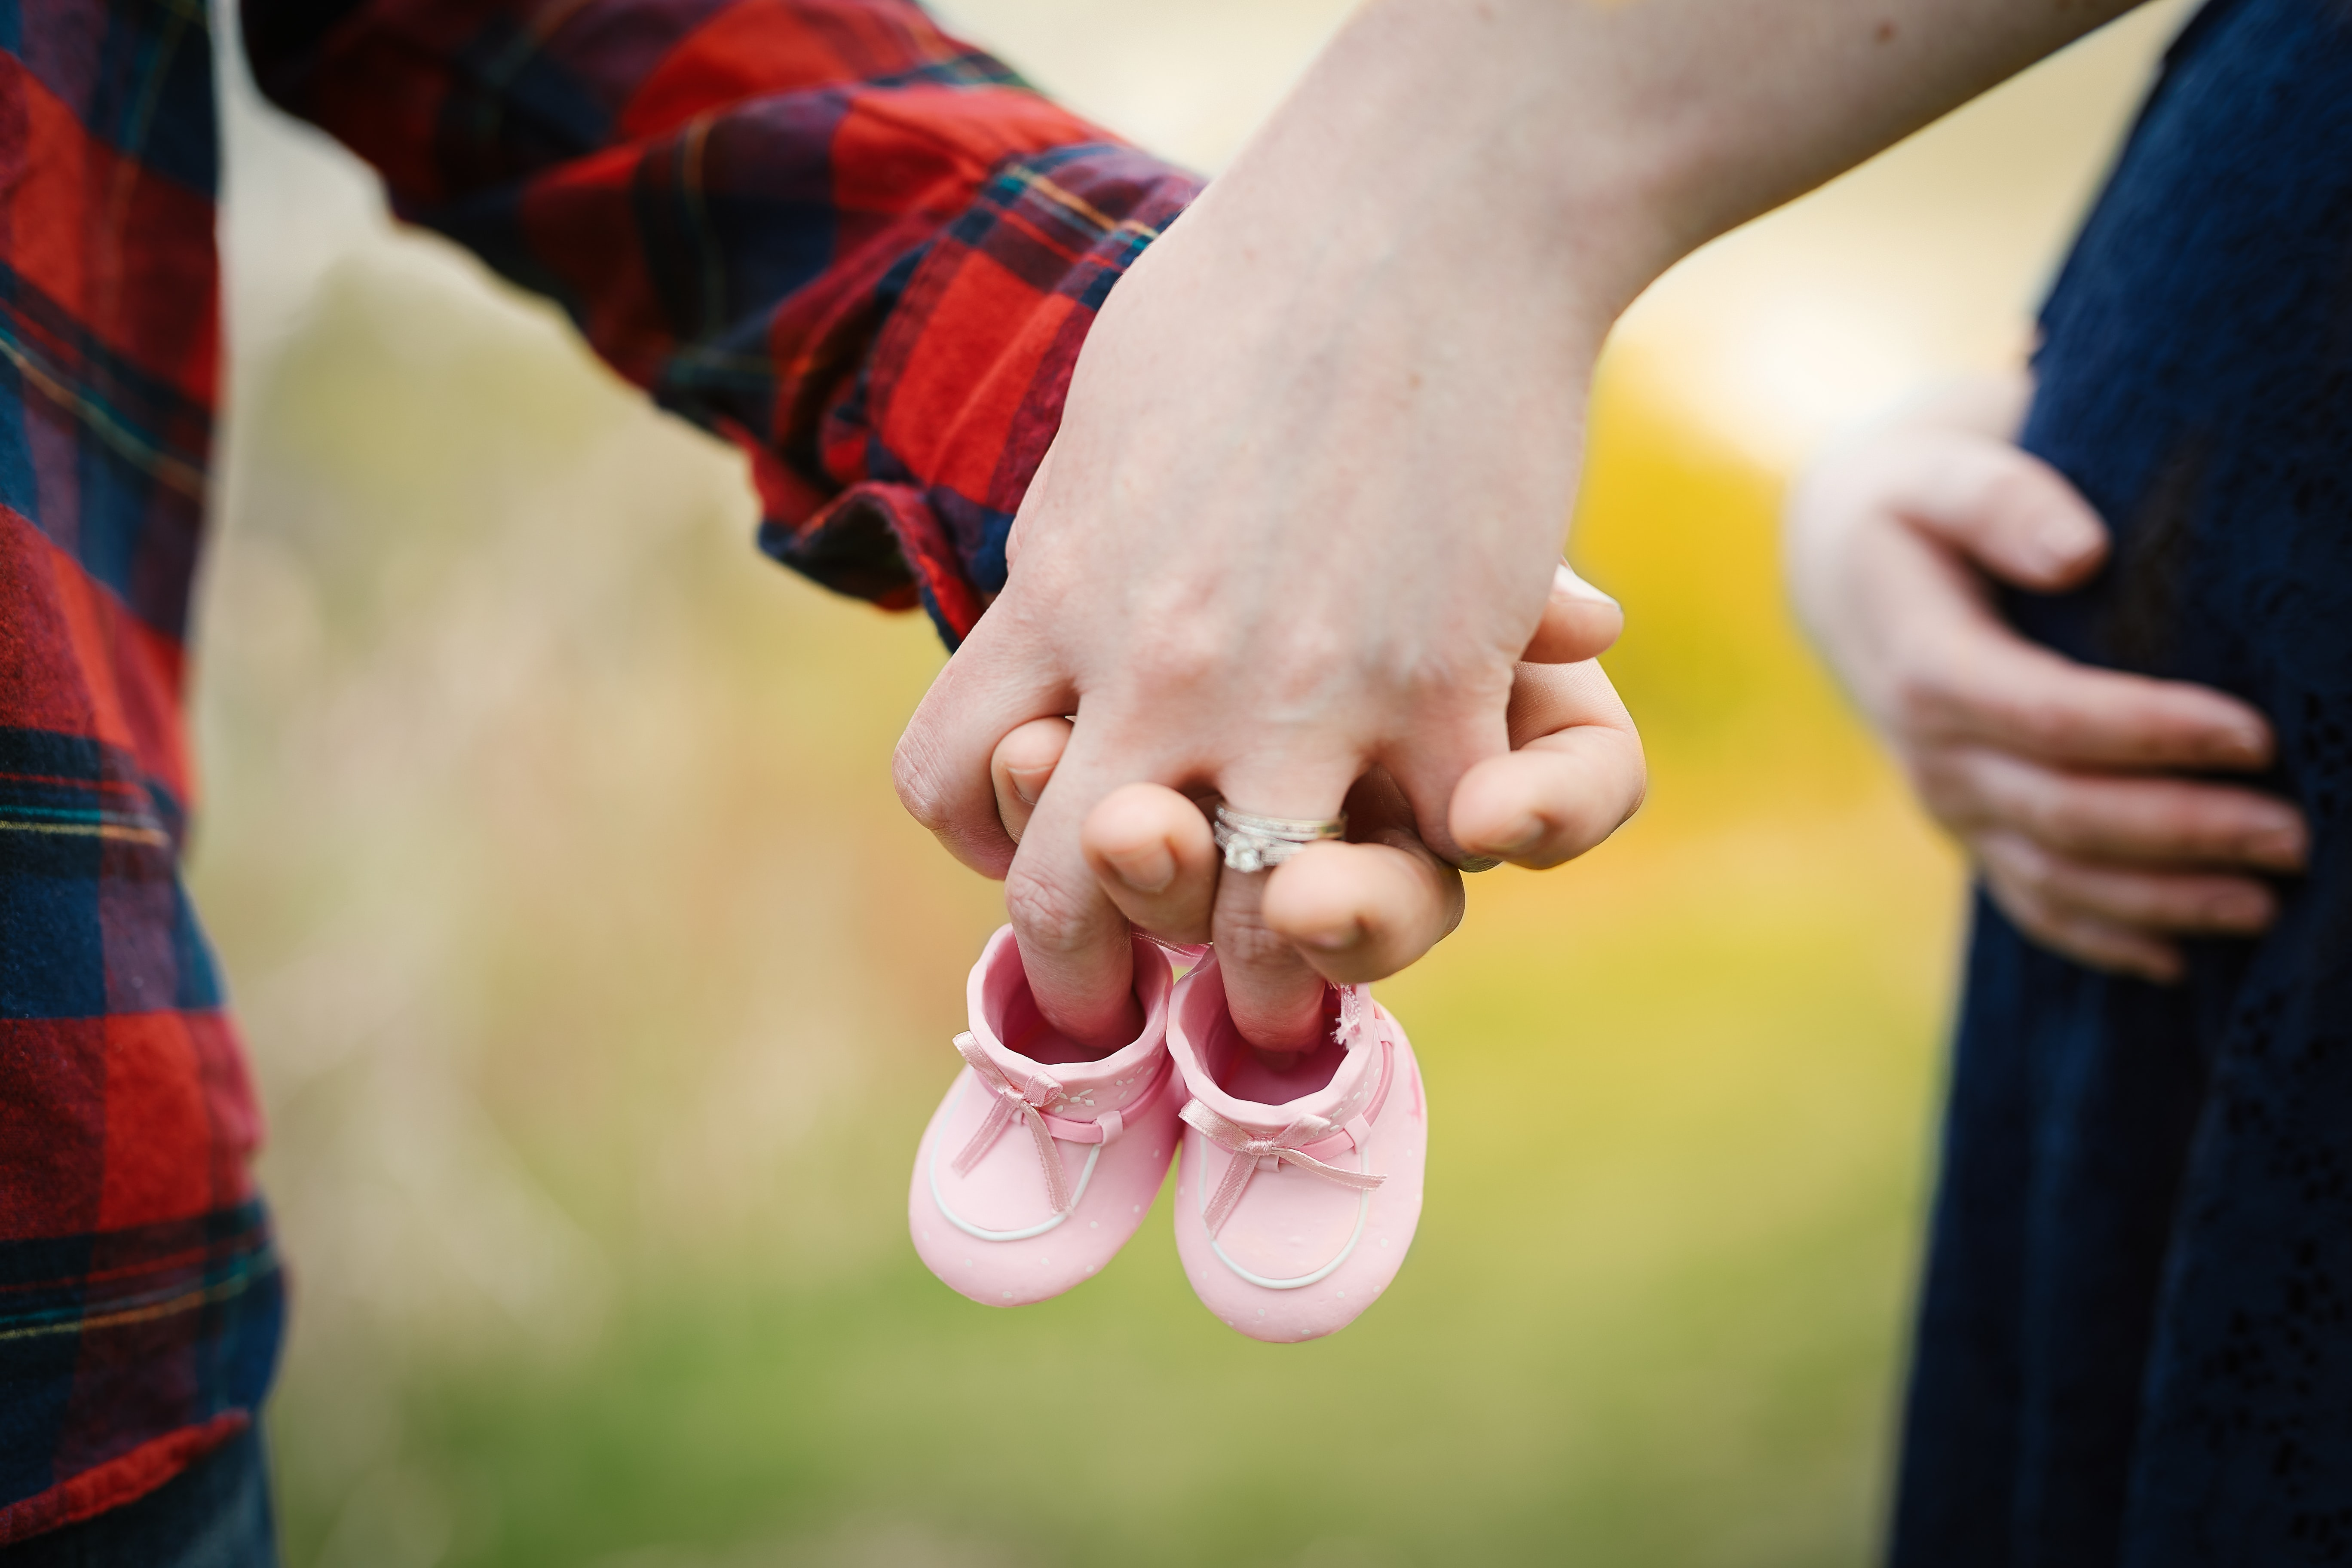 Pregnant woman holds her belly with one hand, her partner and baby shoes in the other